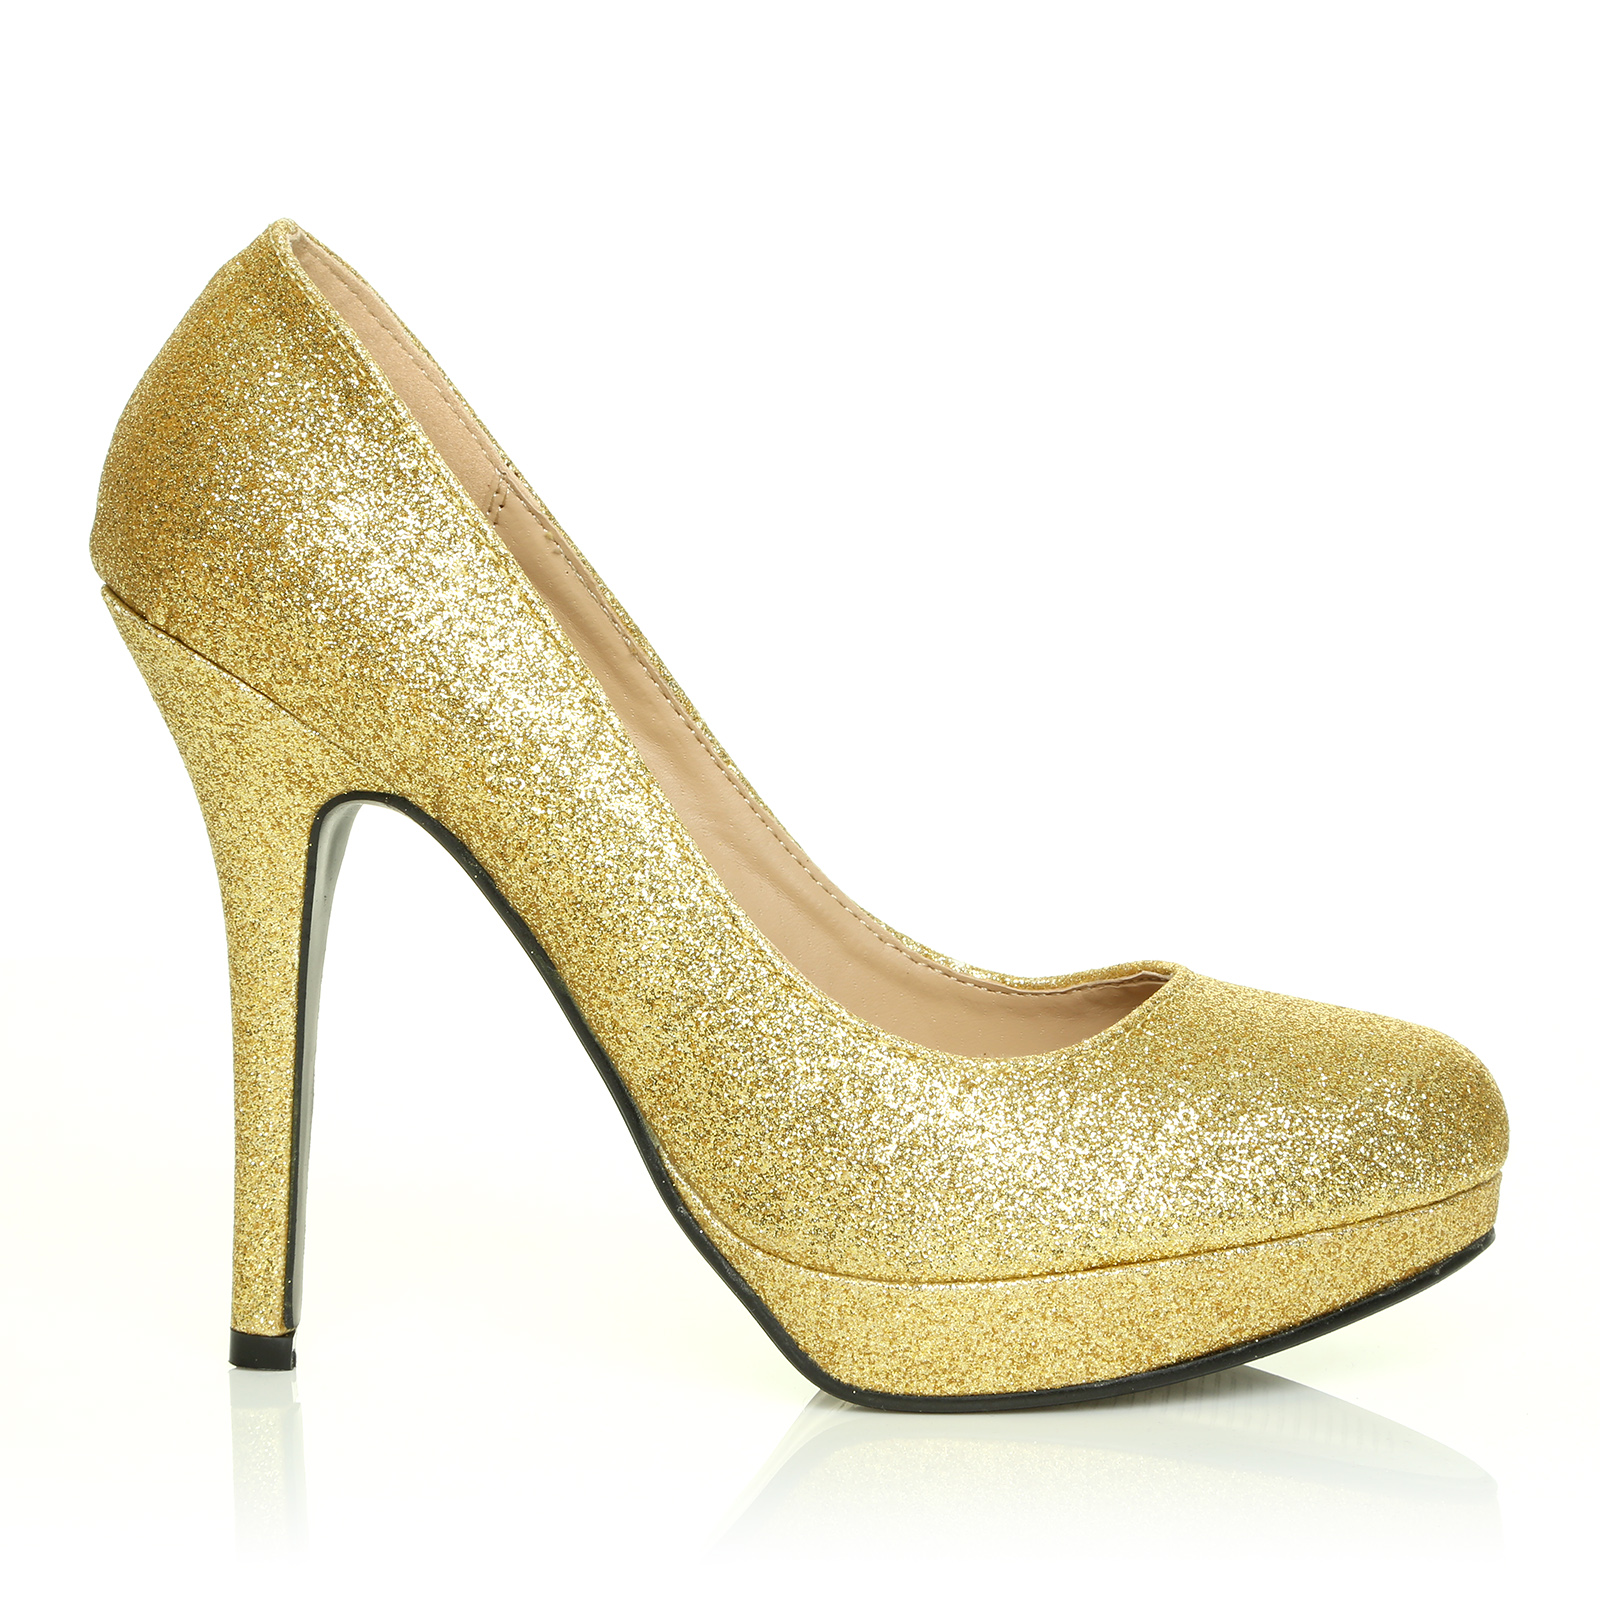 eve gold glitter stiletto high heel platform court shoes ebay. Black Bedroom Furniture Sets. Home Design Ideas